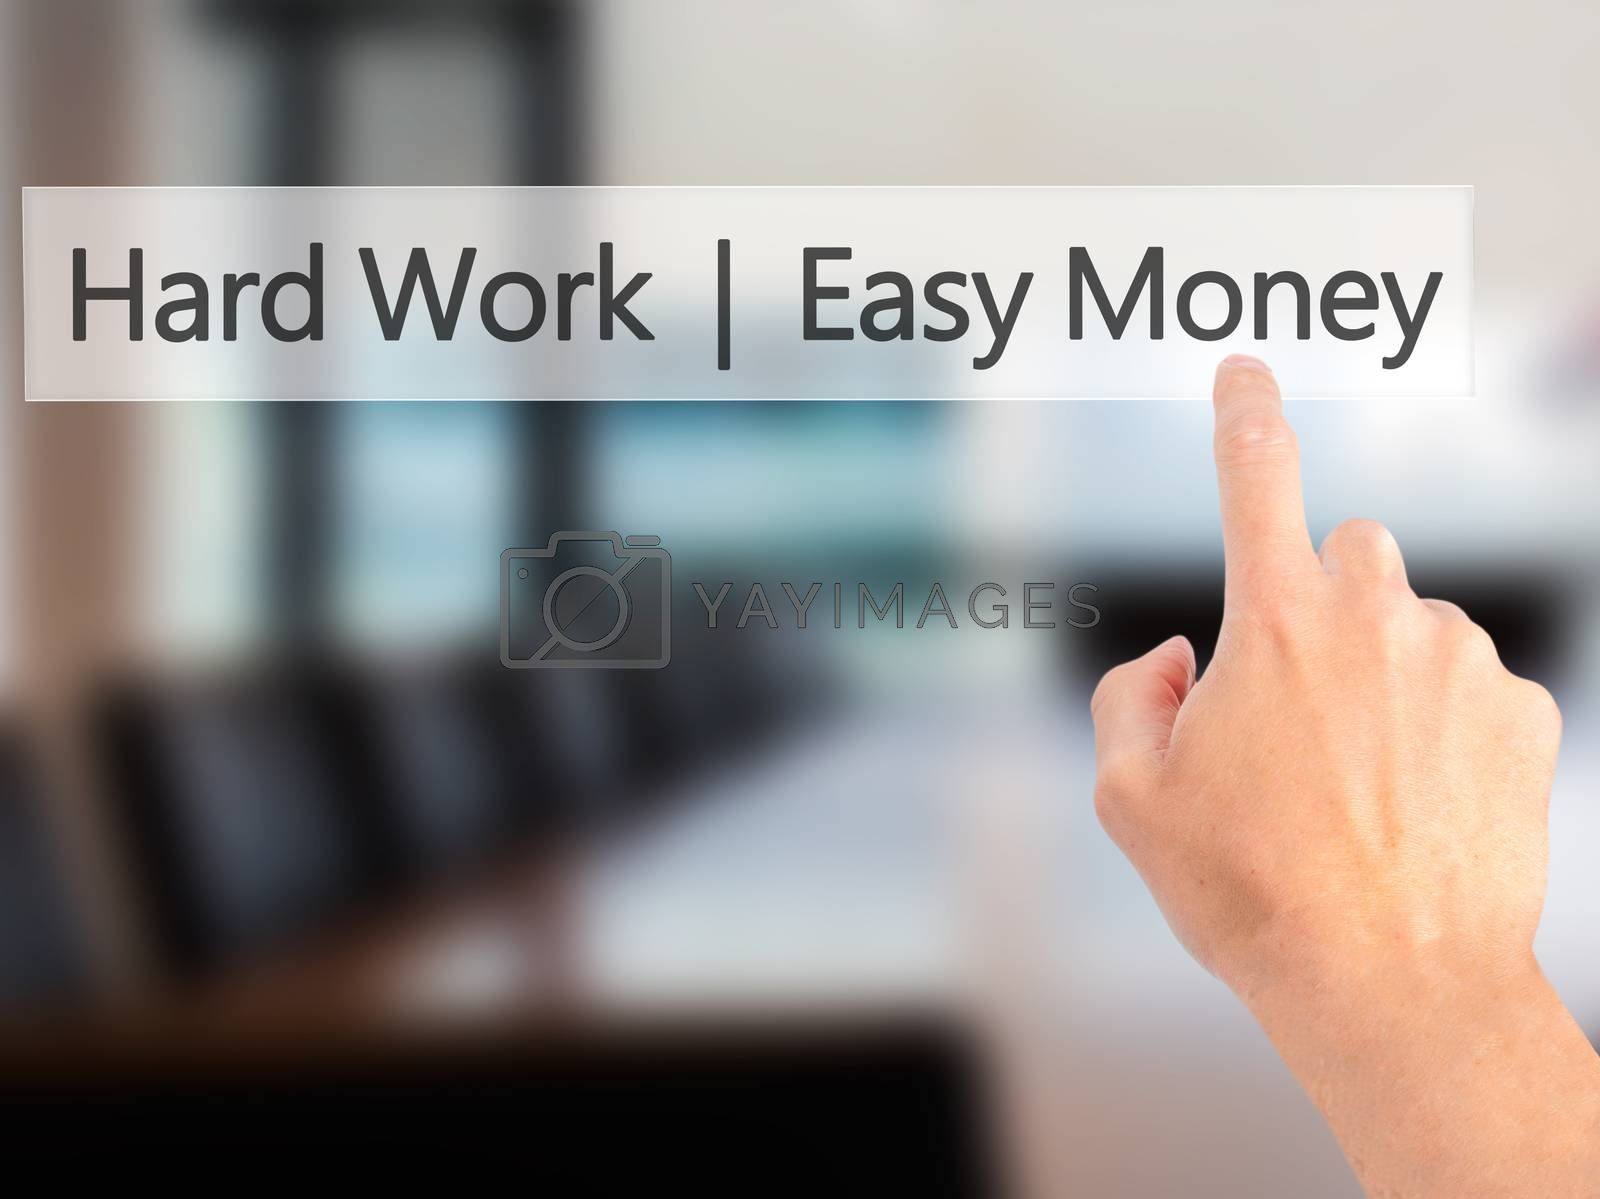 Hard Work  Easy Money - Hand pressing a button on blurred backgr by jackald